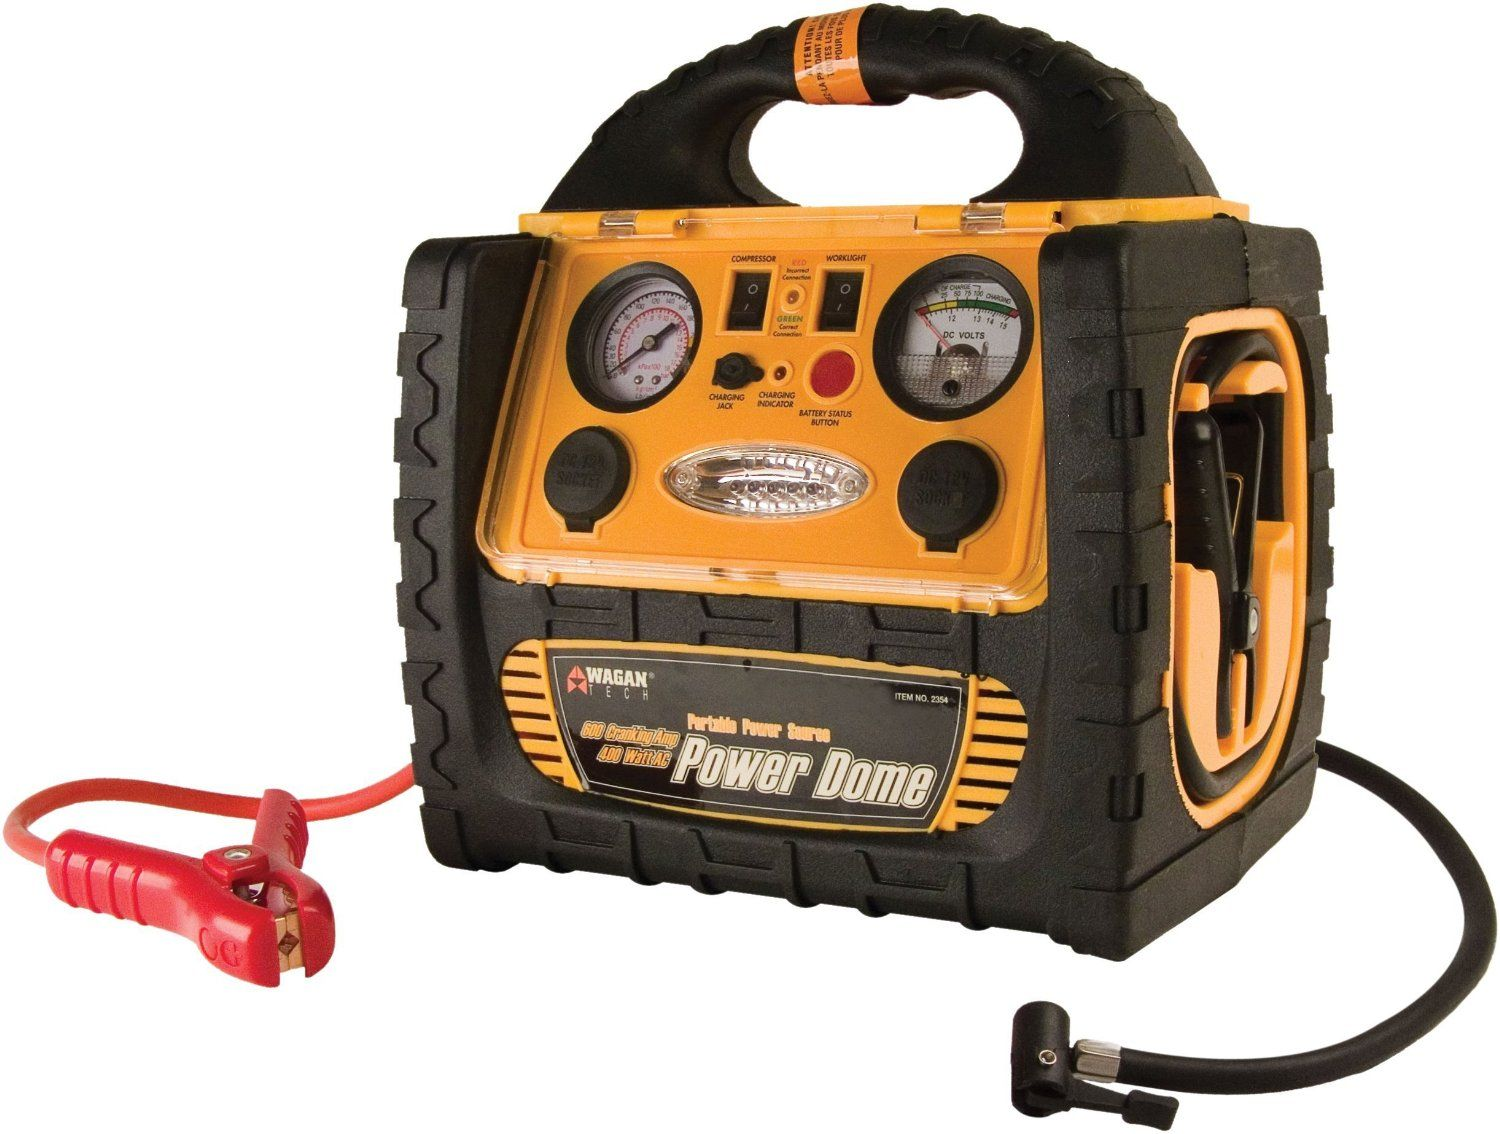 A look at the Wagan 400Watt Power Dome Jump Starter http